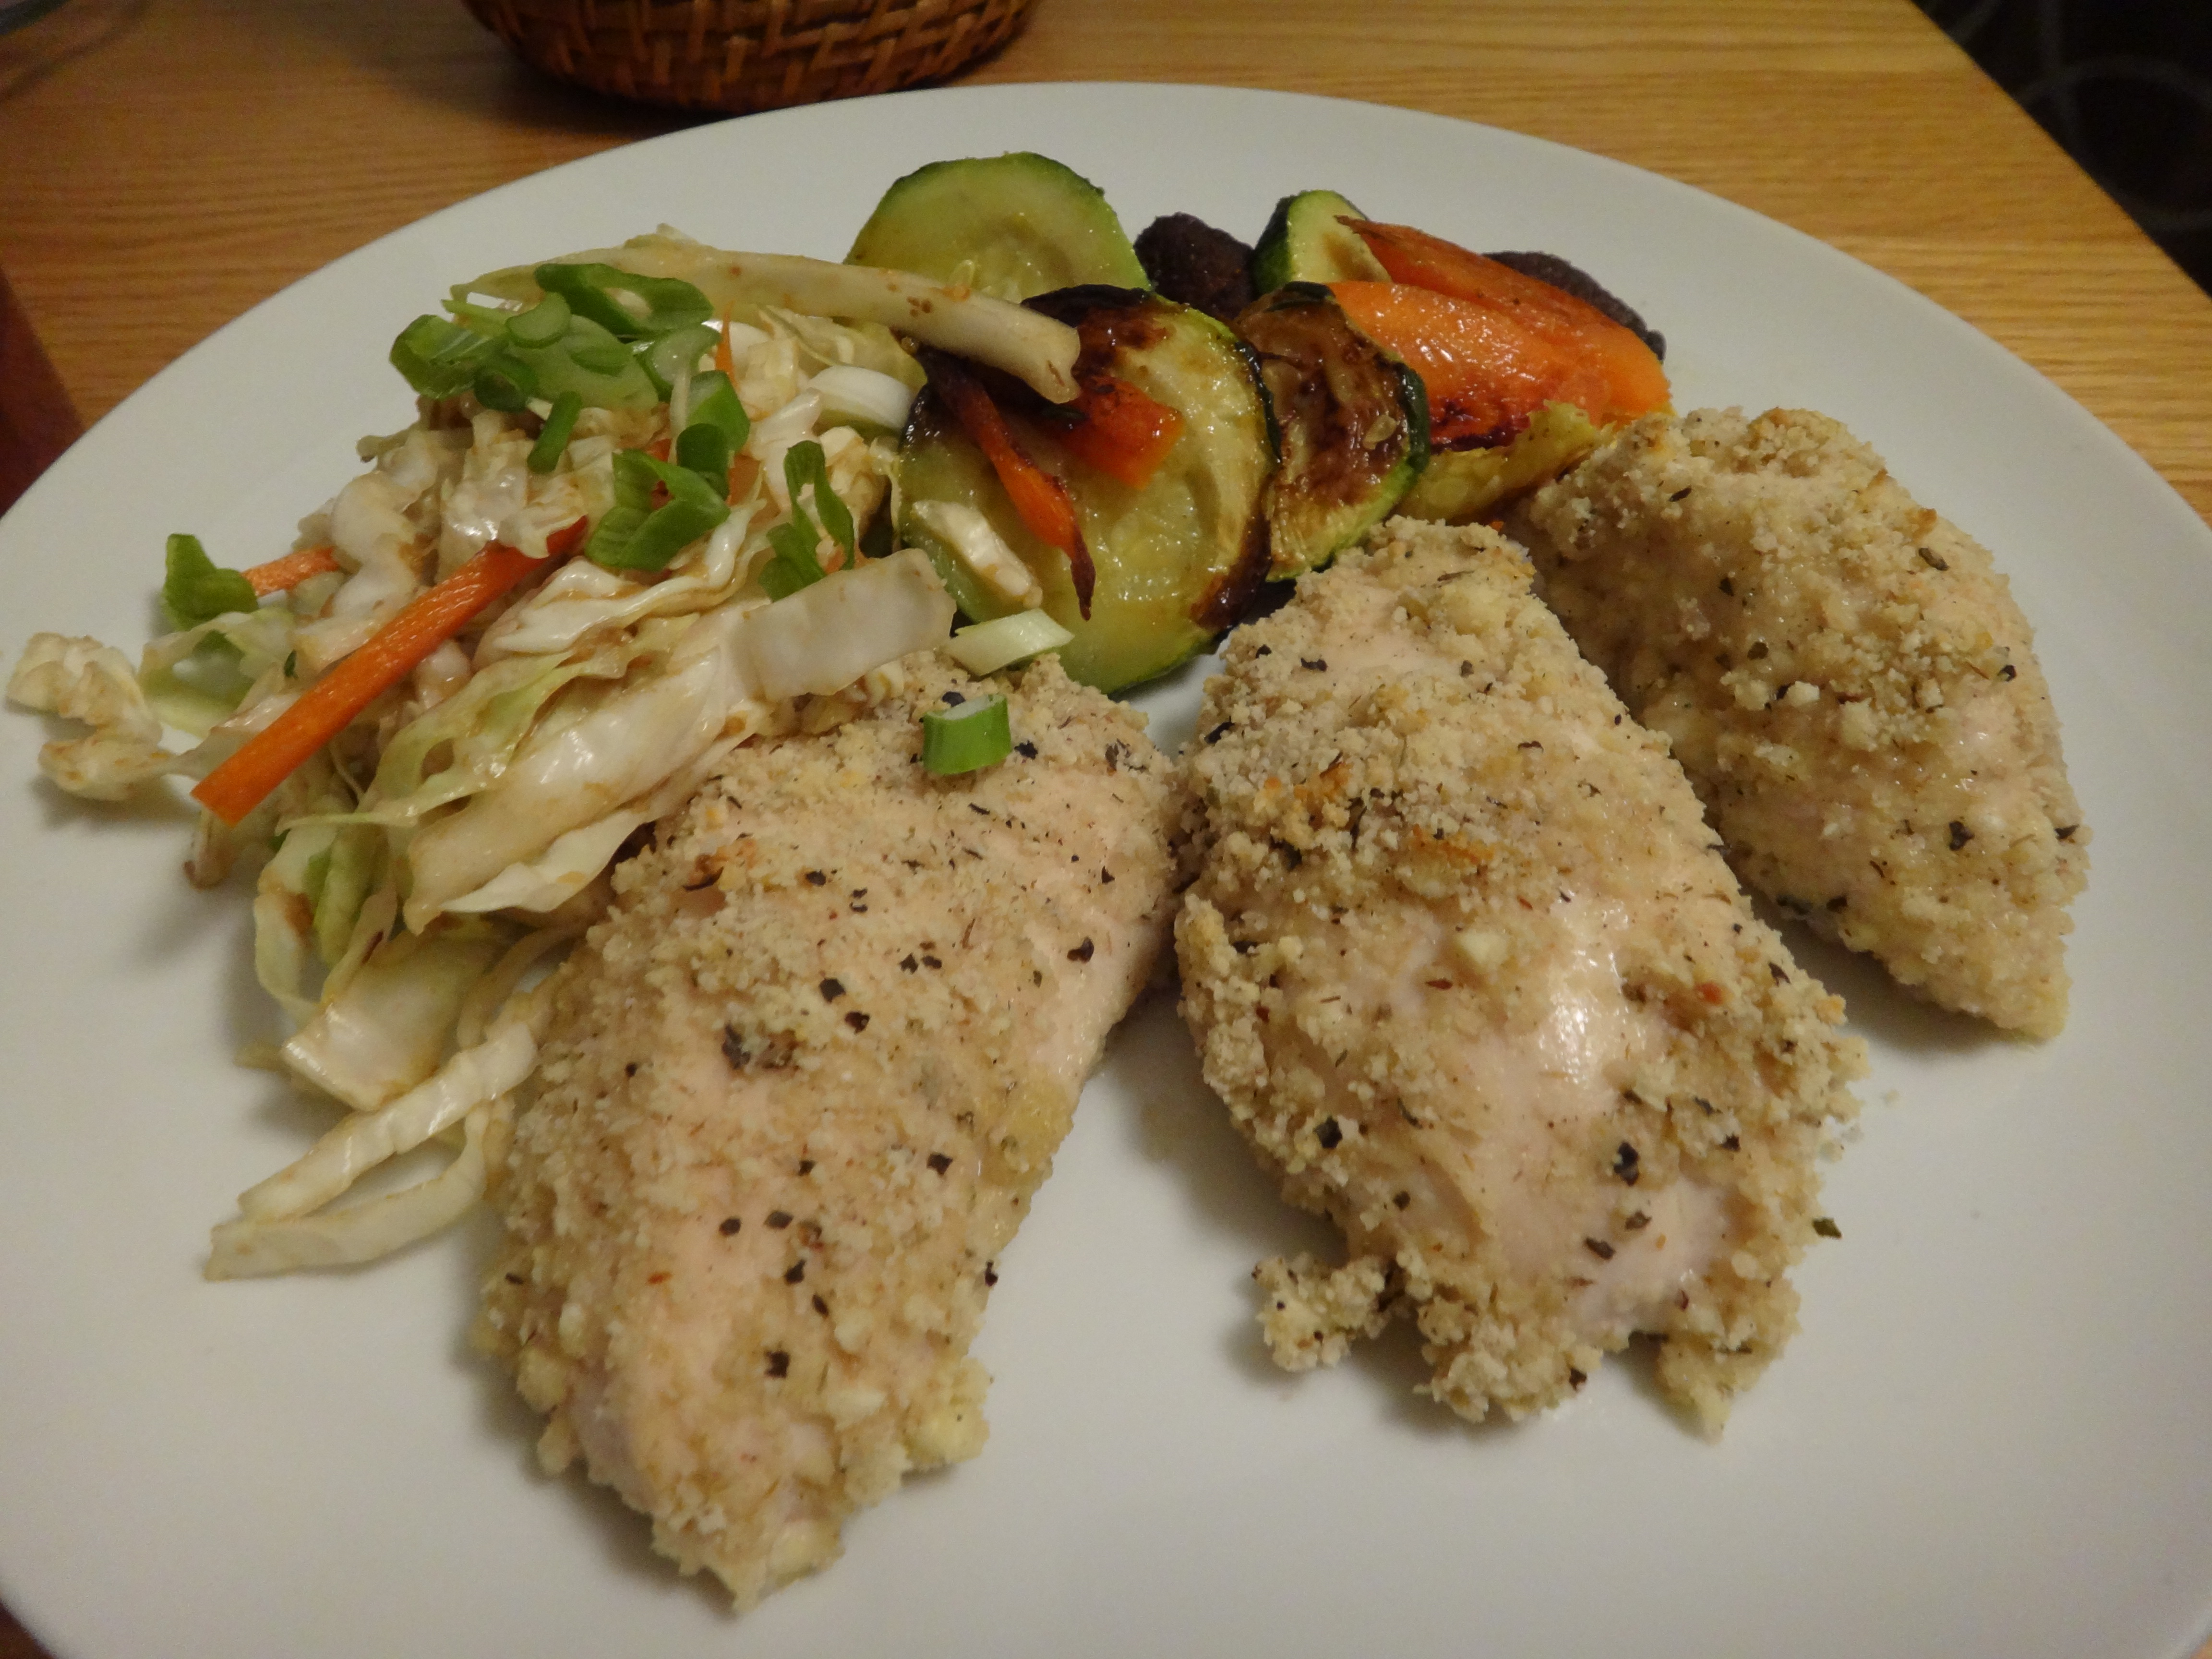 gluten free chicken tenders with cabbage salad with miso-ginger dressing